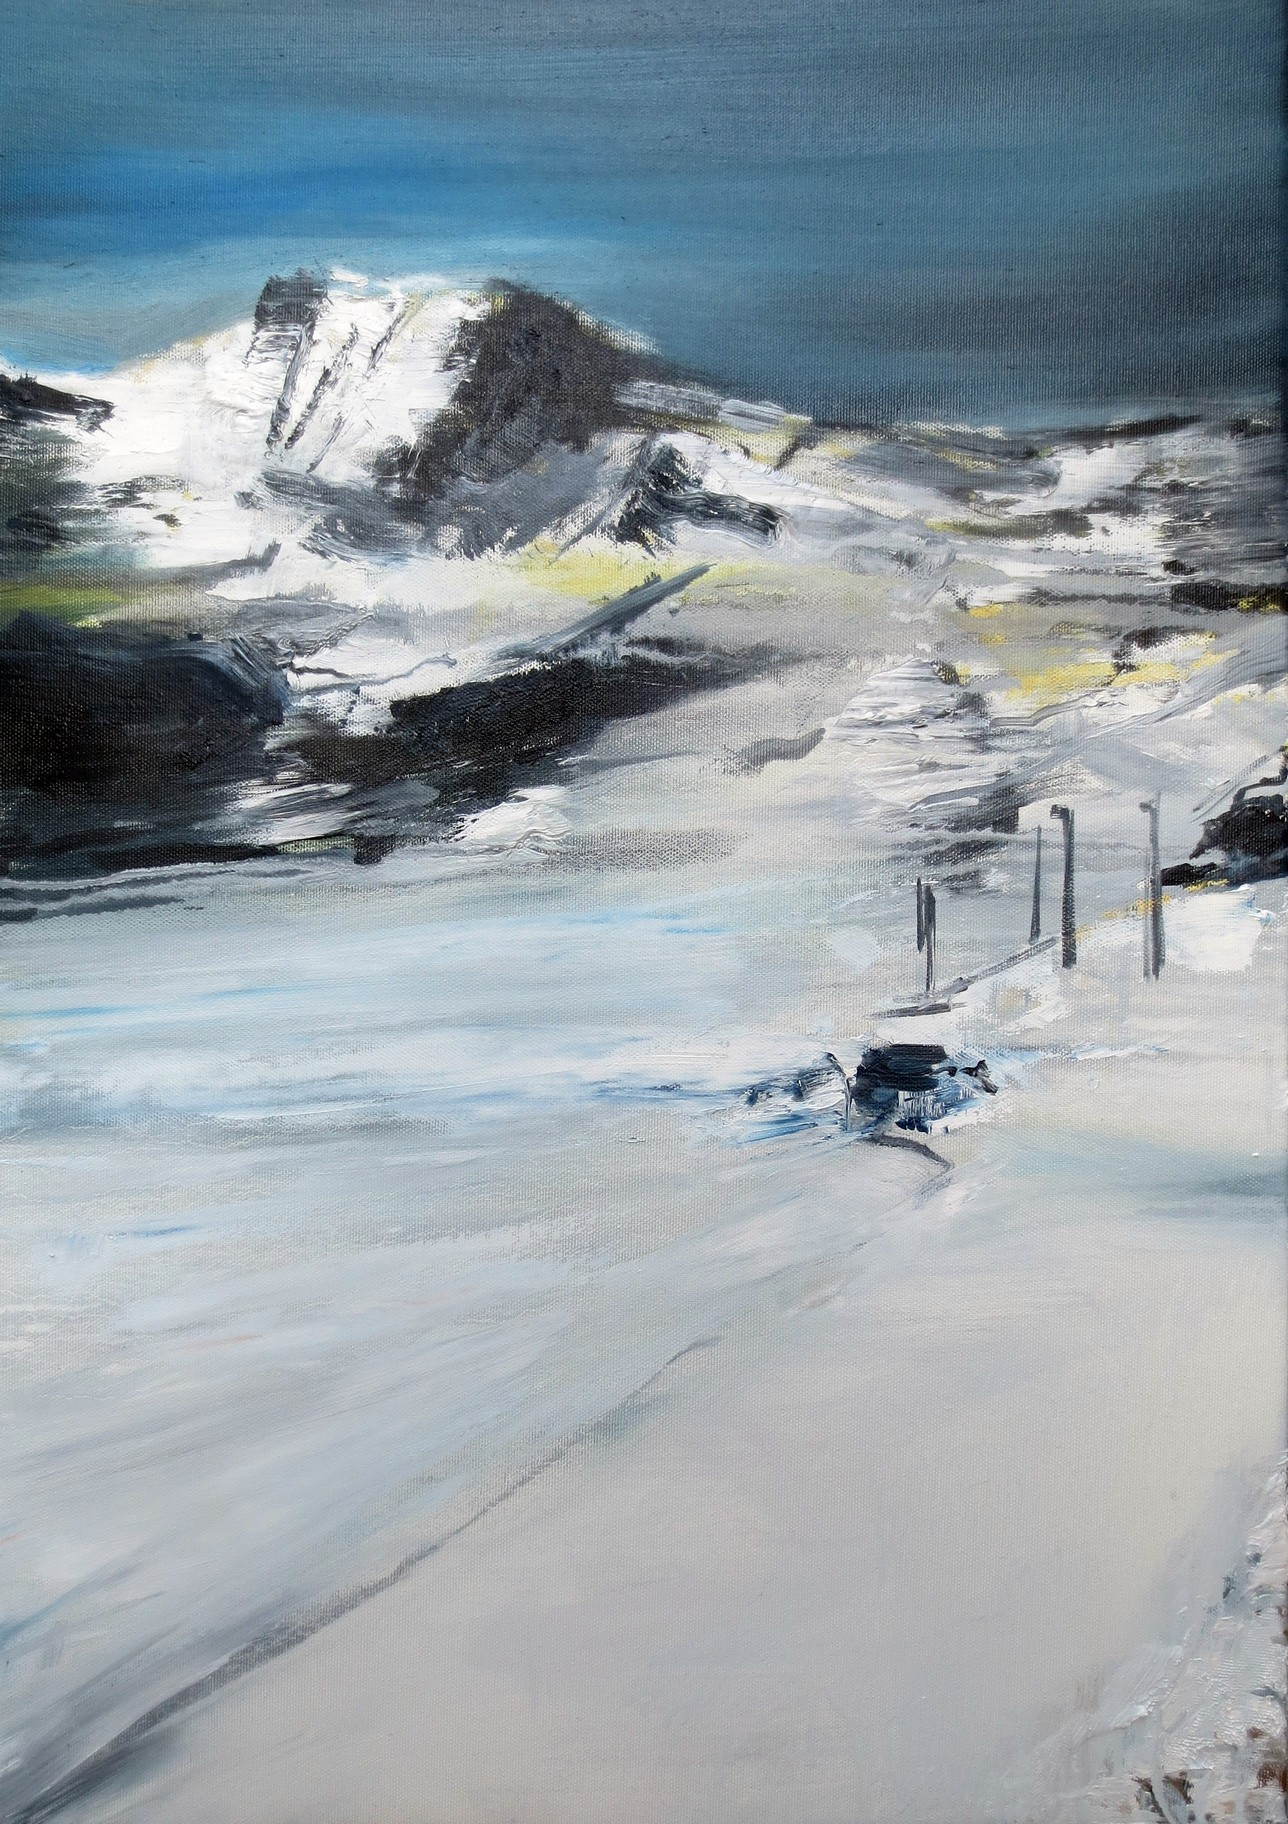 Francesco Zavatta 2018 Alpi 80x60cm oil on canvas